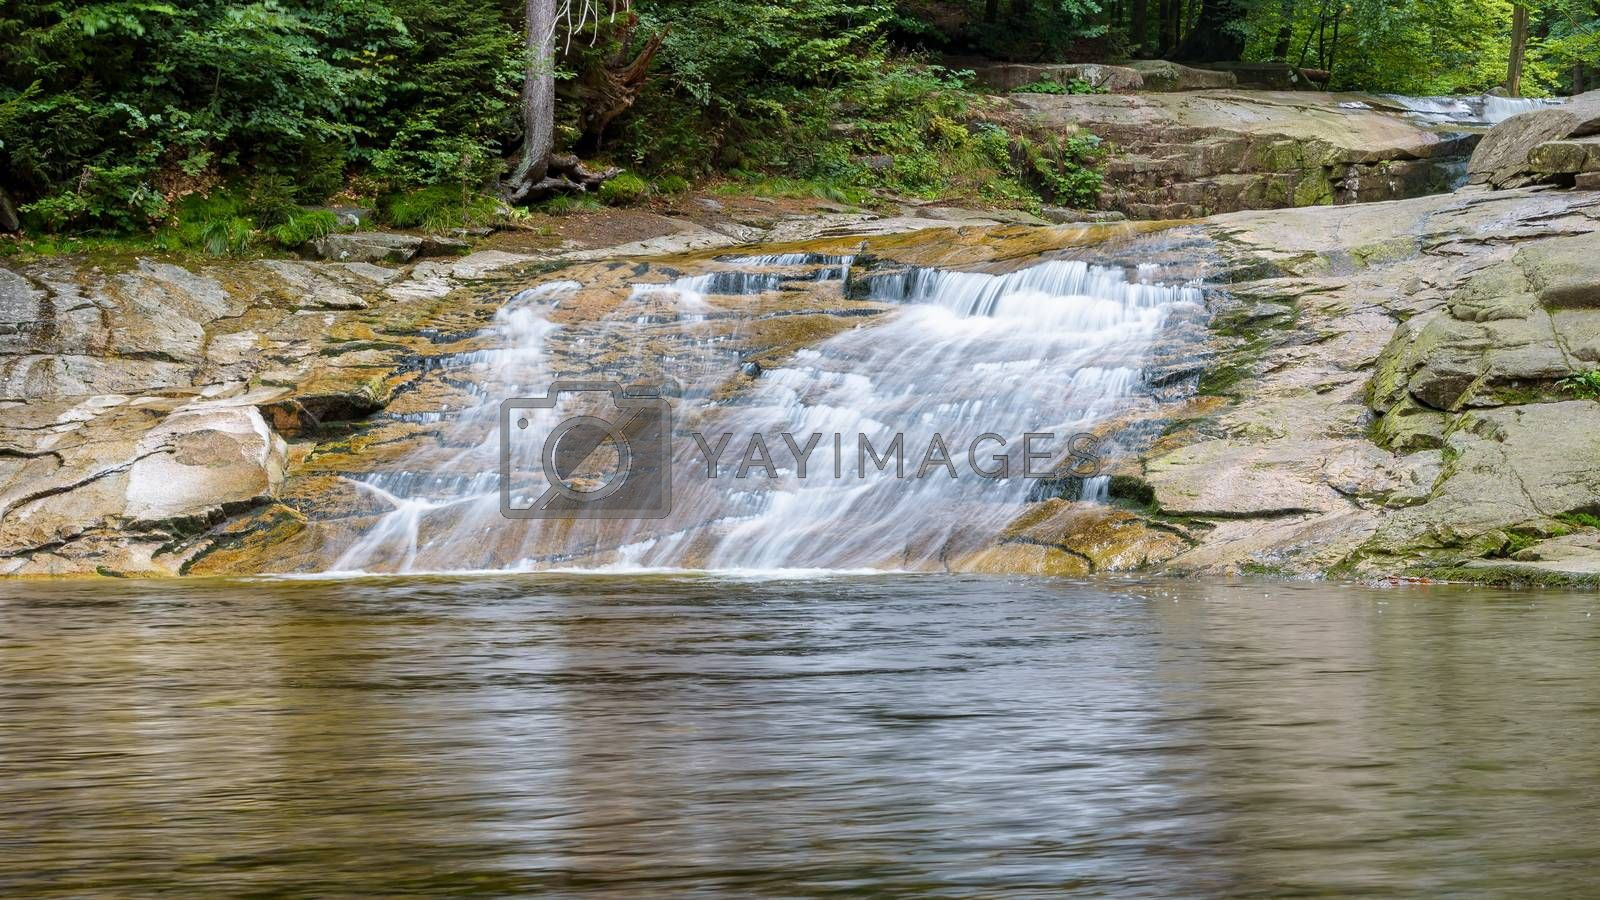 Blurred water of the cascades on the Mumlava river near Harrachov in Giant Mountains in Czech Republic